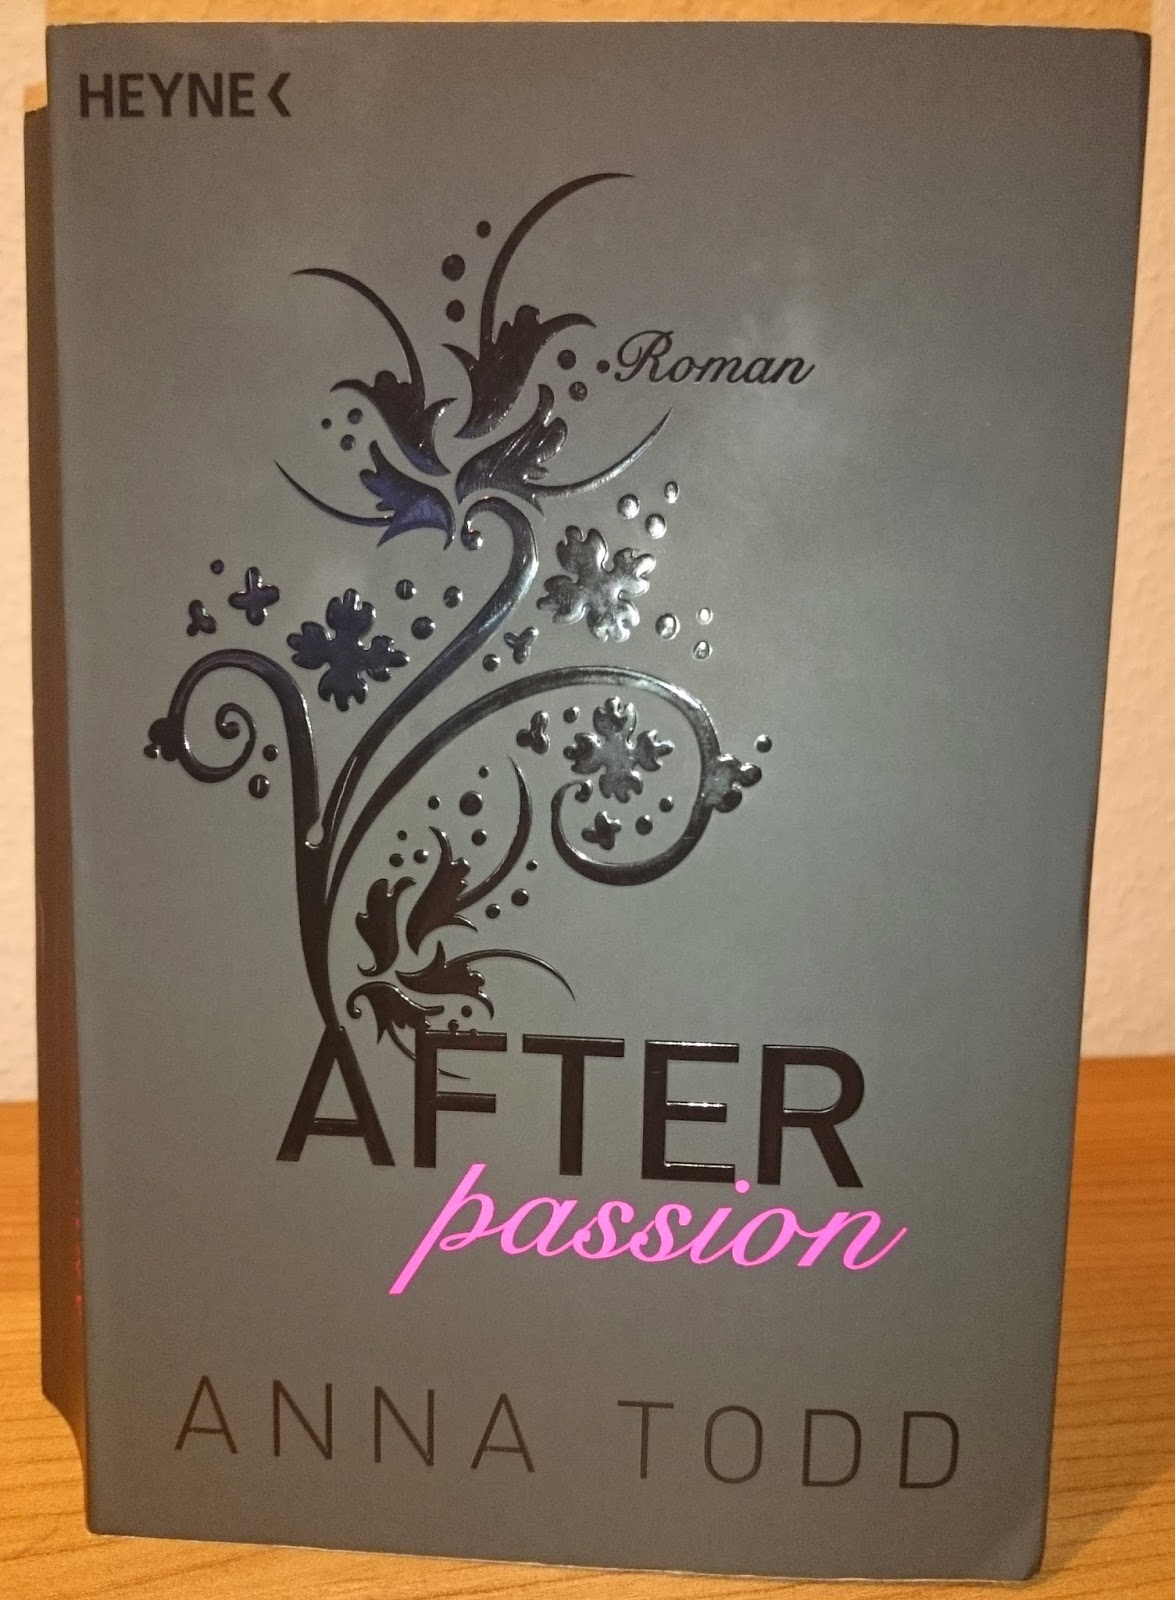 Anna Todd - After passion (Band 1)